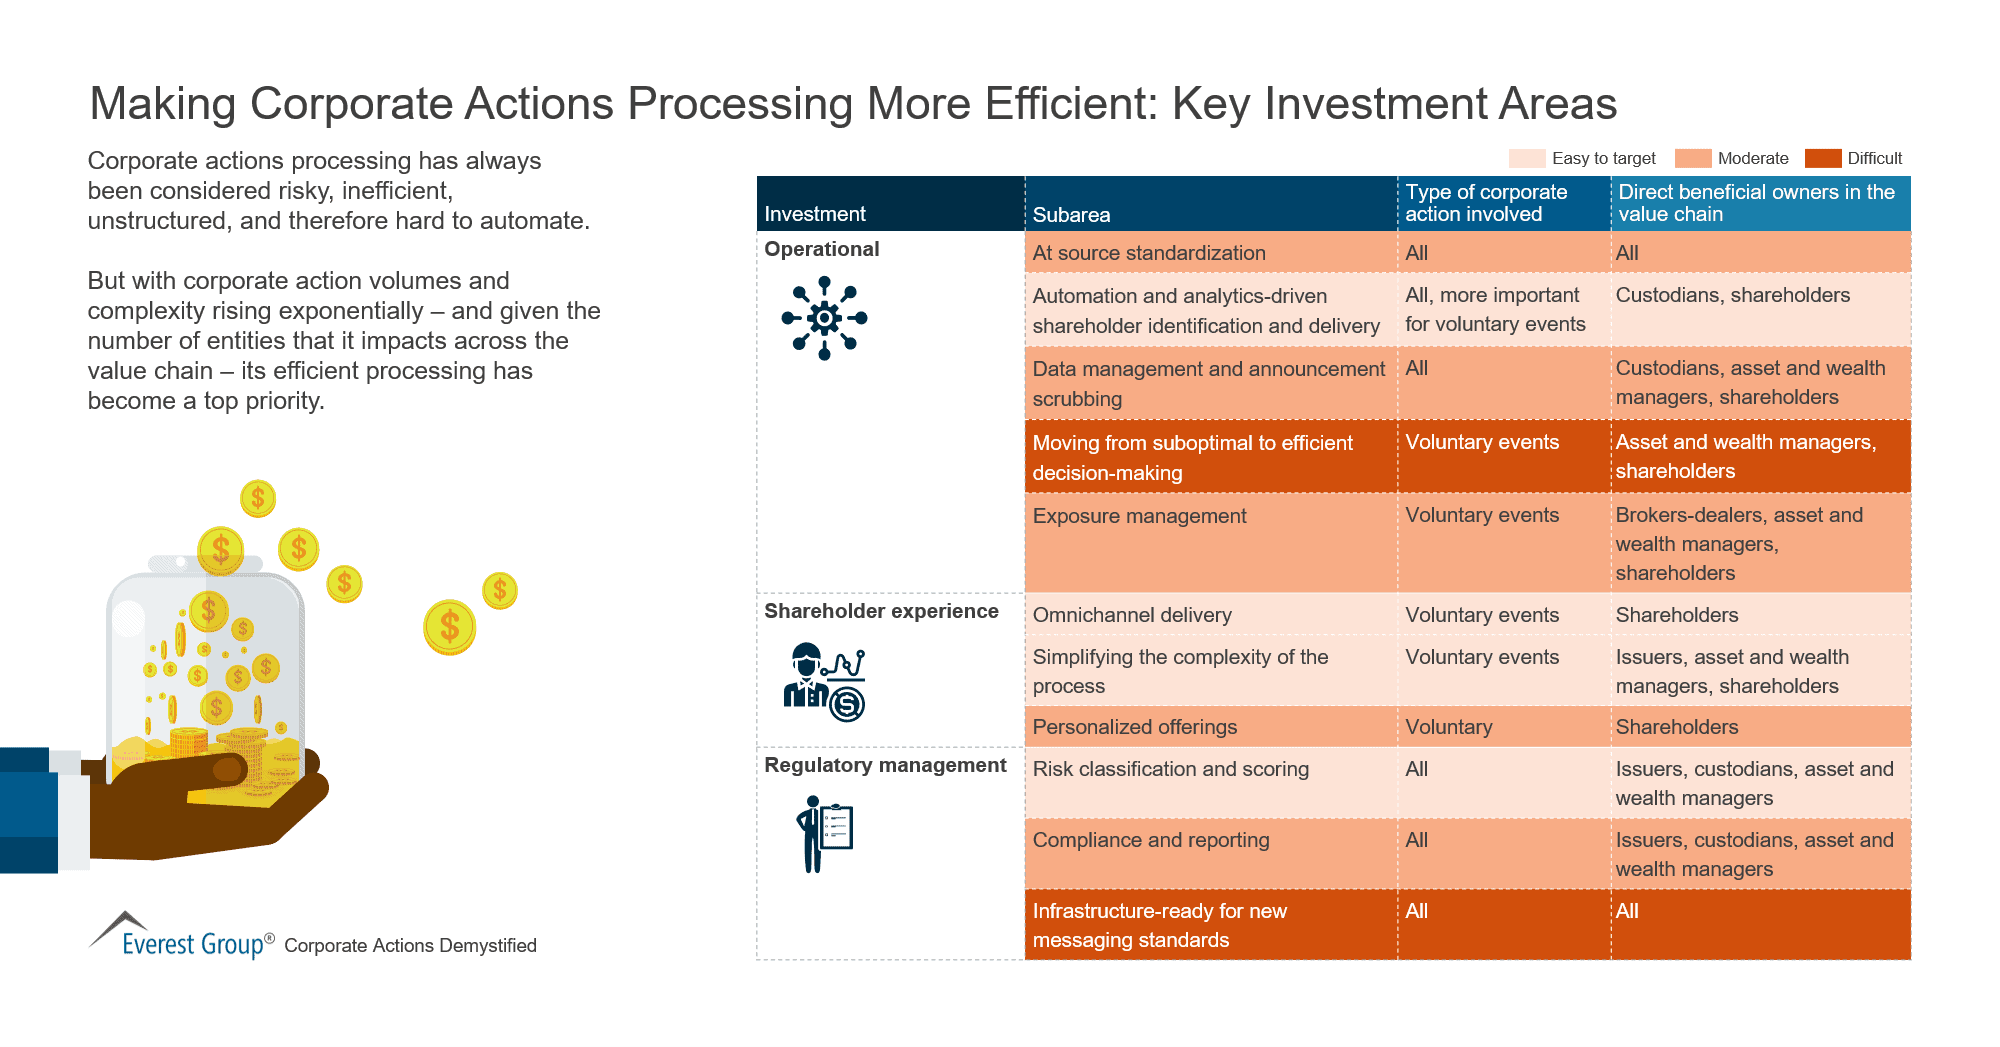 Making Corporate Actions Processing More Efficient-Key Investment Areas